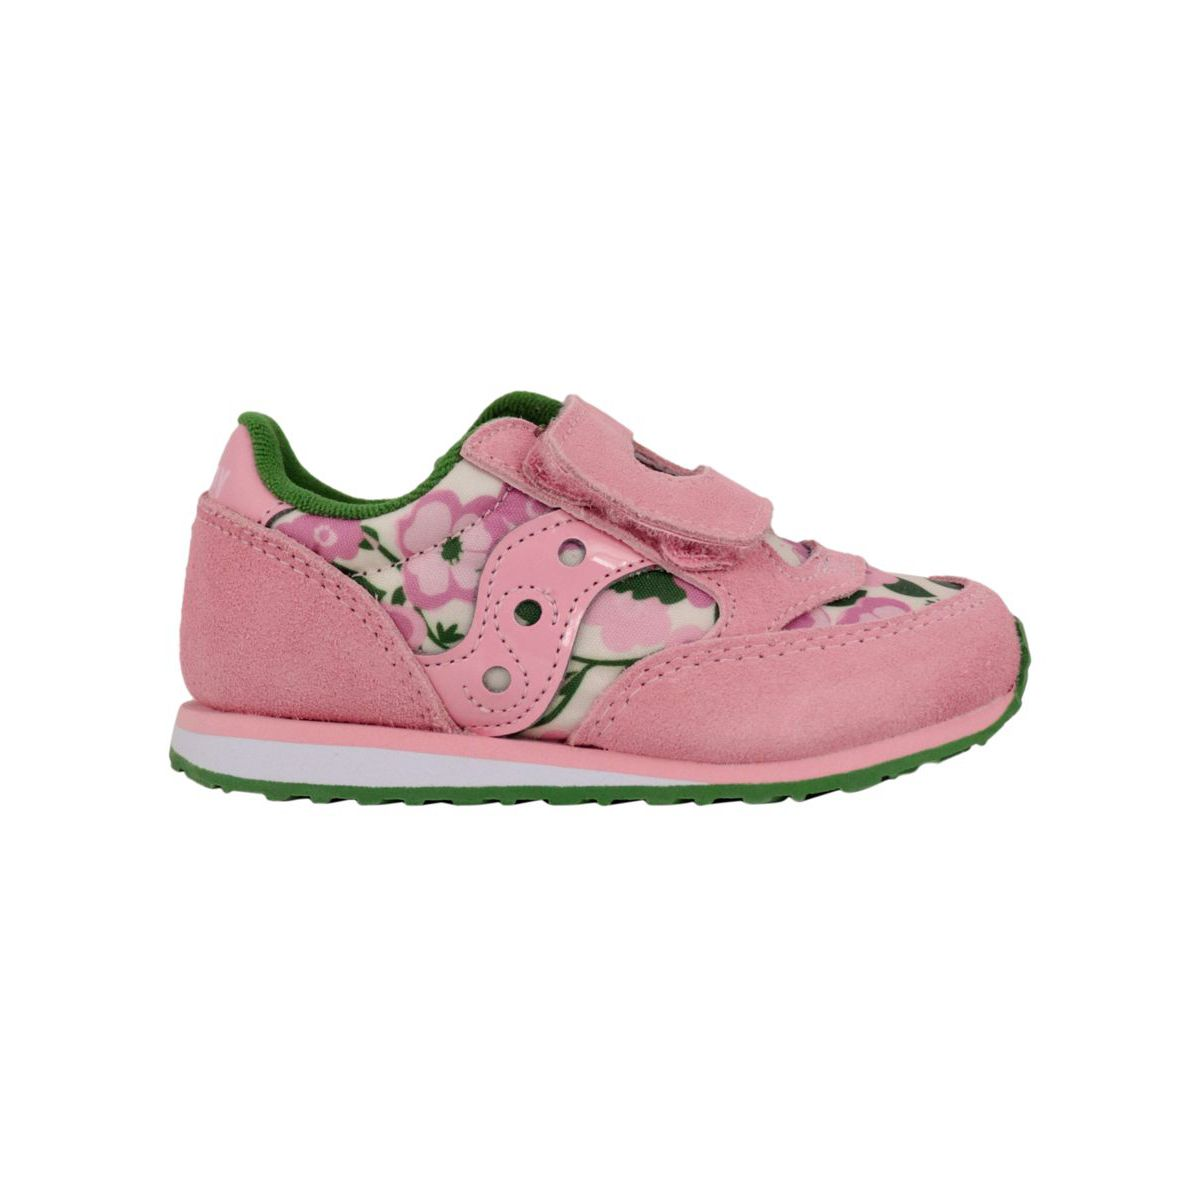 Floral sneakers Baby Jazz HL Pink floral Saucony